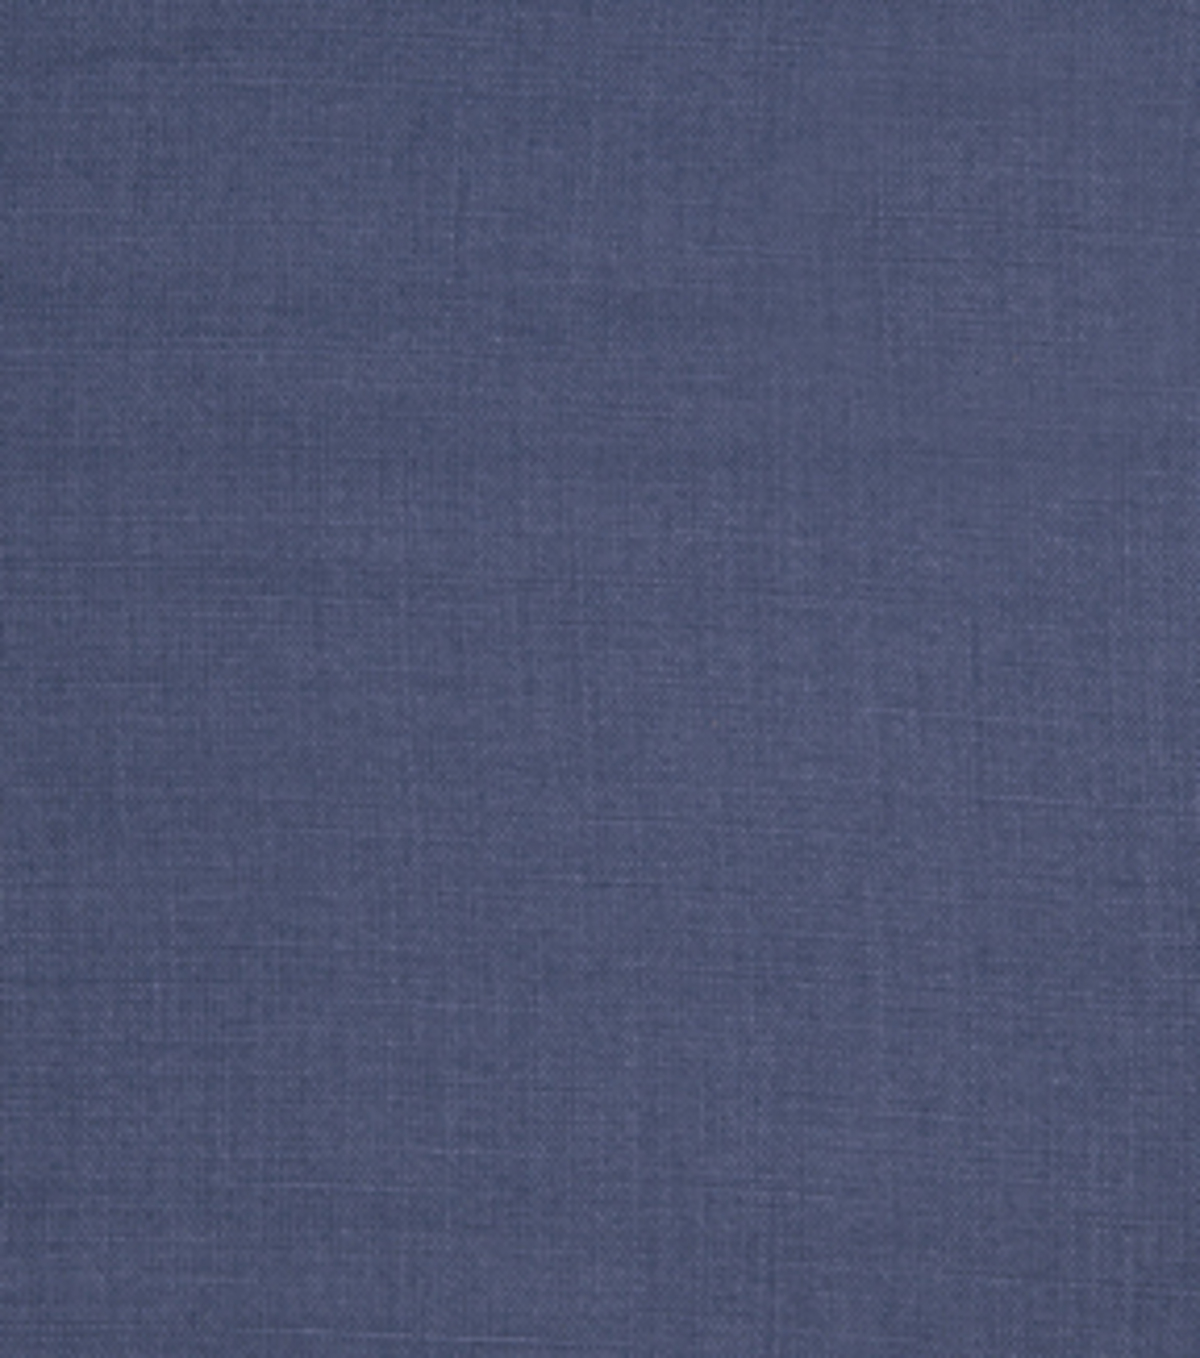 Home Decor 8\u0022x8\u0022 Fabric Swatch-Signature Series Sigourney Denim